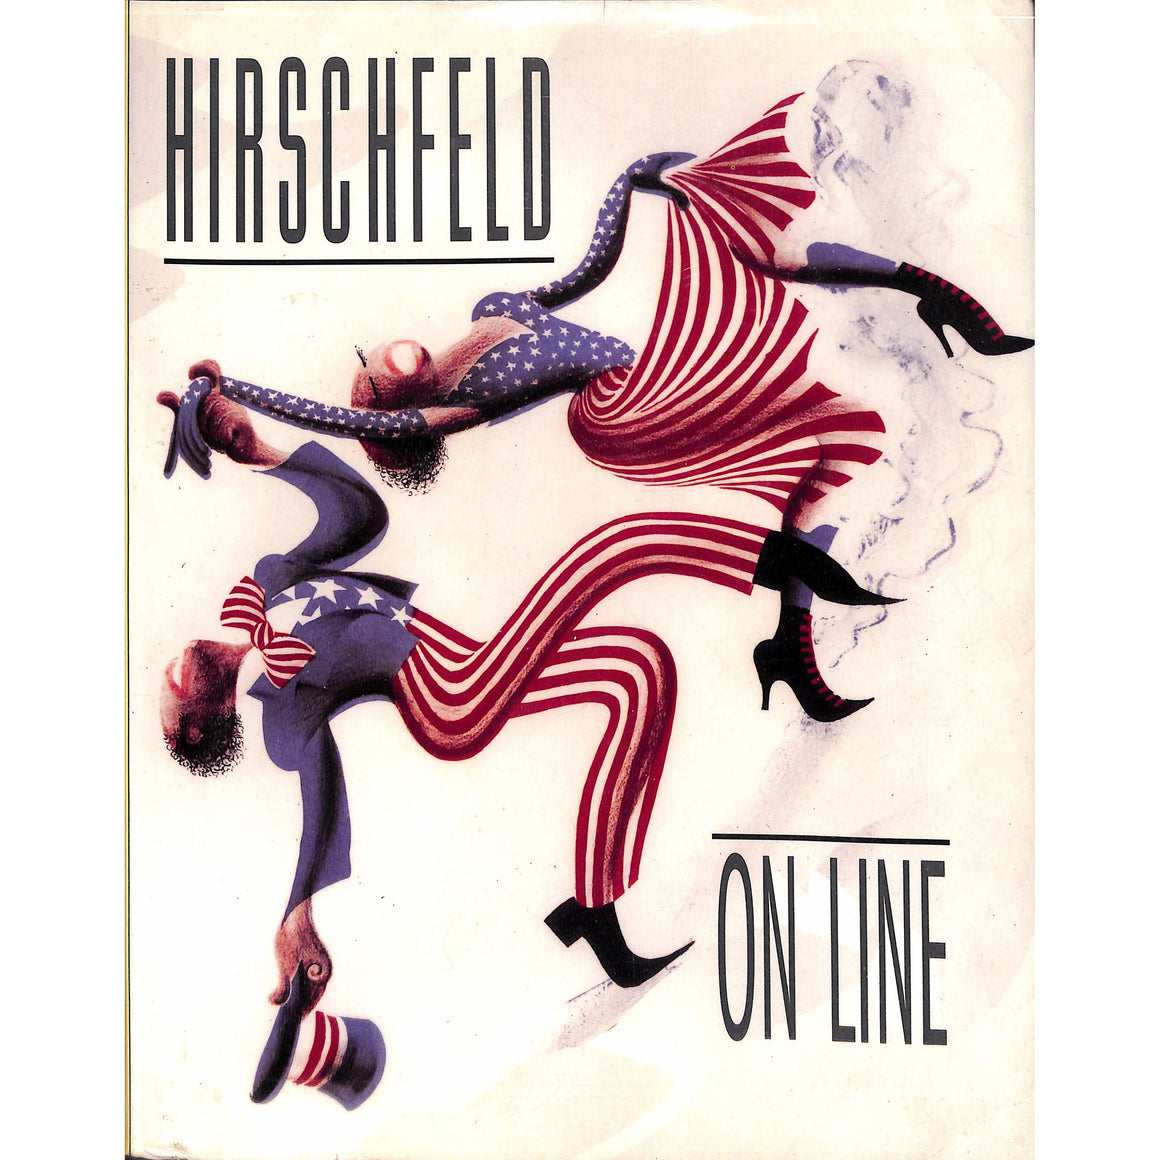 Hirschfeld On Line